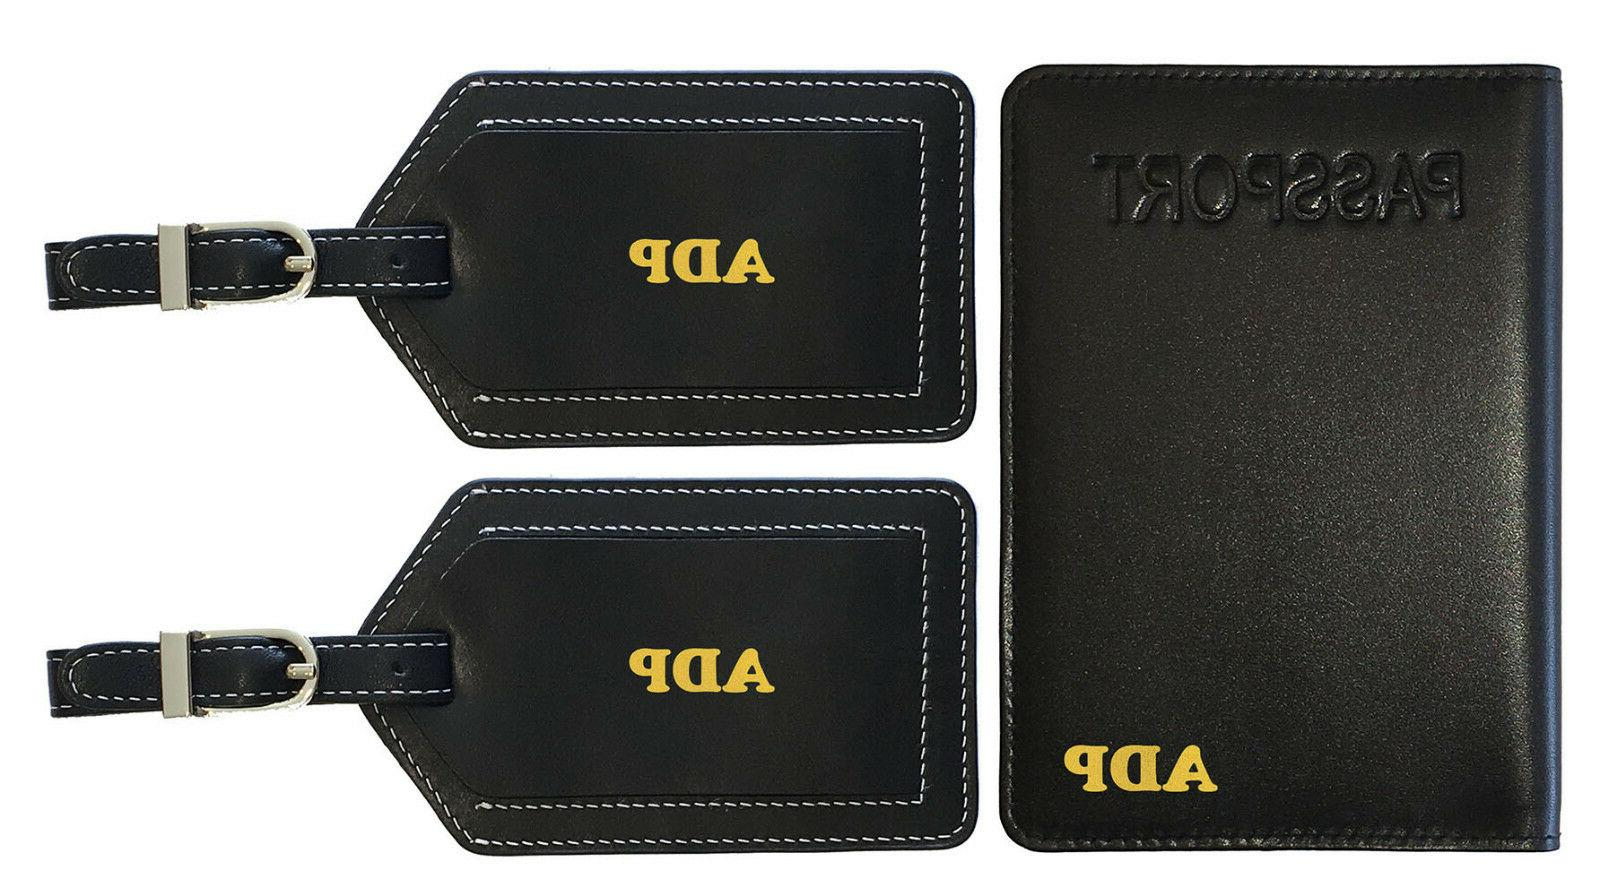 517926a43c65 Personalized Monogrammed Leather RFID Passport Holder Cover and 2 Luggage  Tags